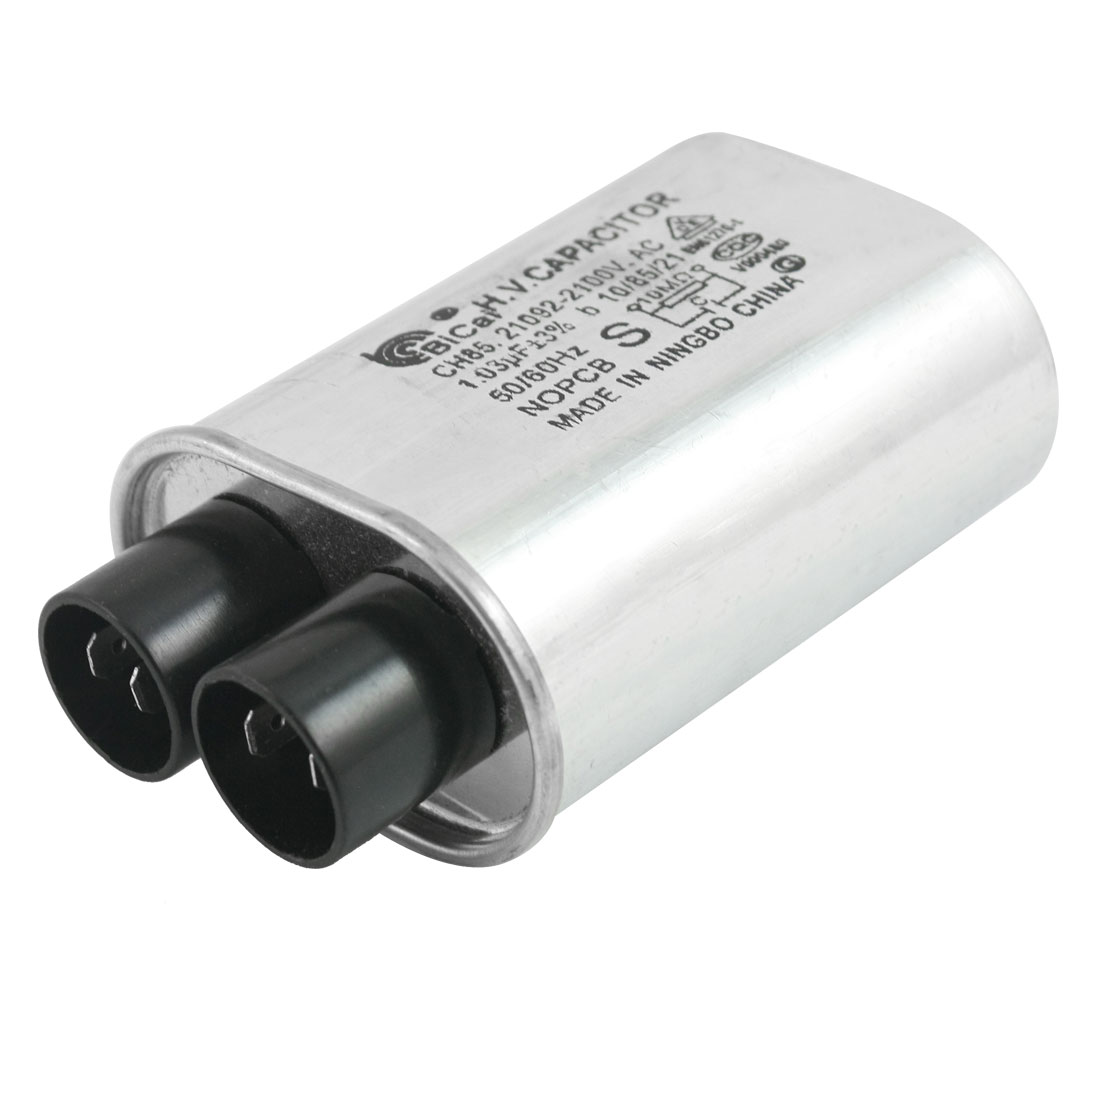 AC 2100V 1.03uF 3%b 50/60Hz Cylindrical High Voltage Microwave Oven Capacitor